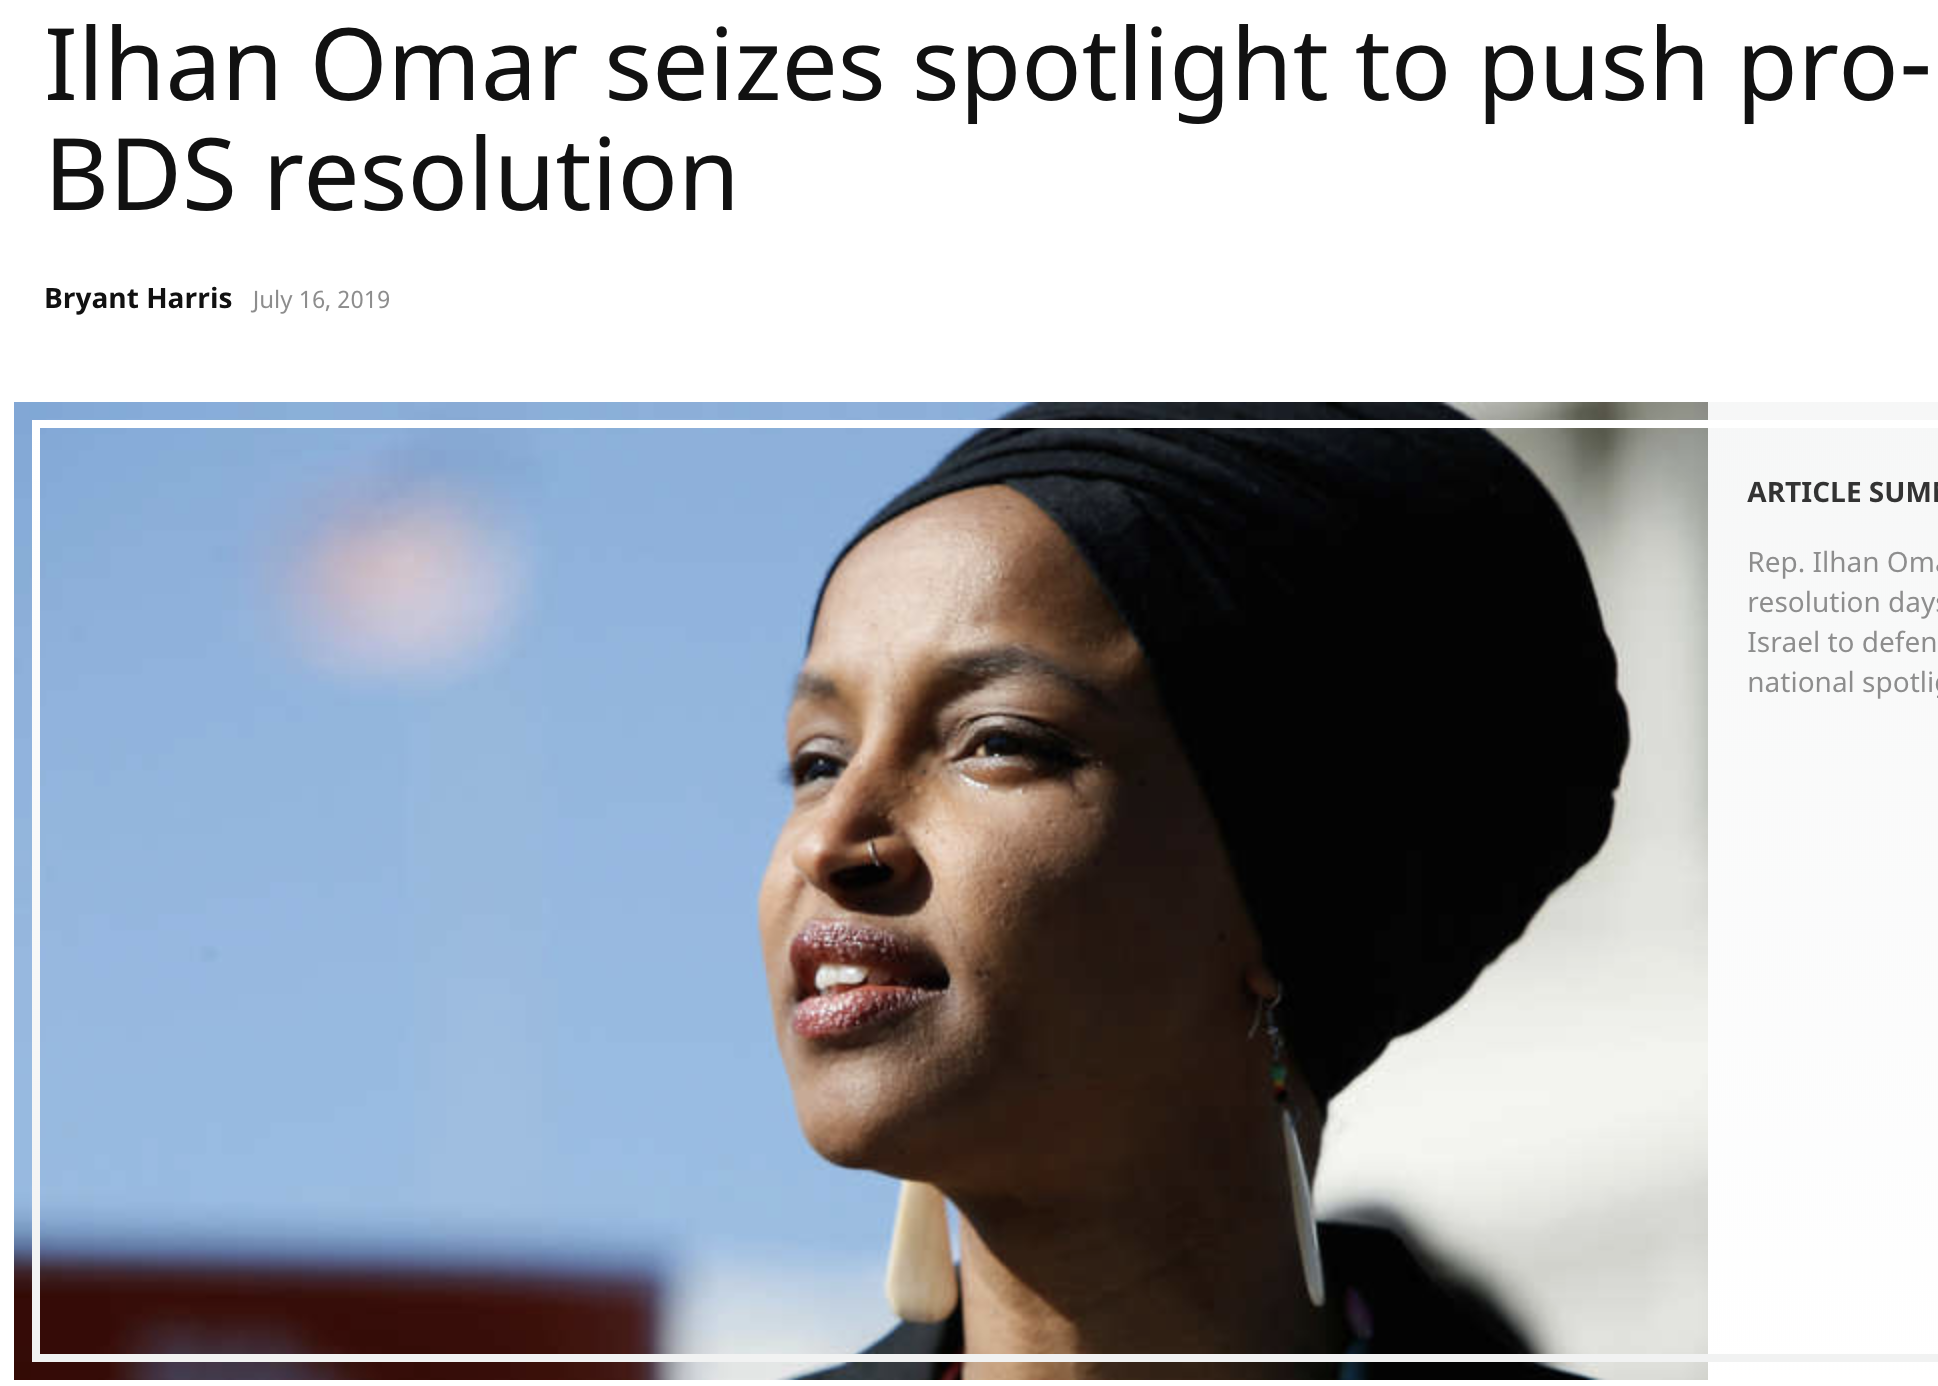 Ilhan Omar about to introduce pro-boycott (read: pro-BDS) resolution